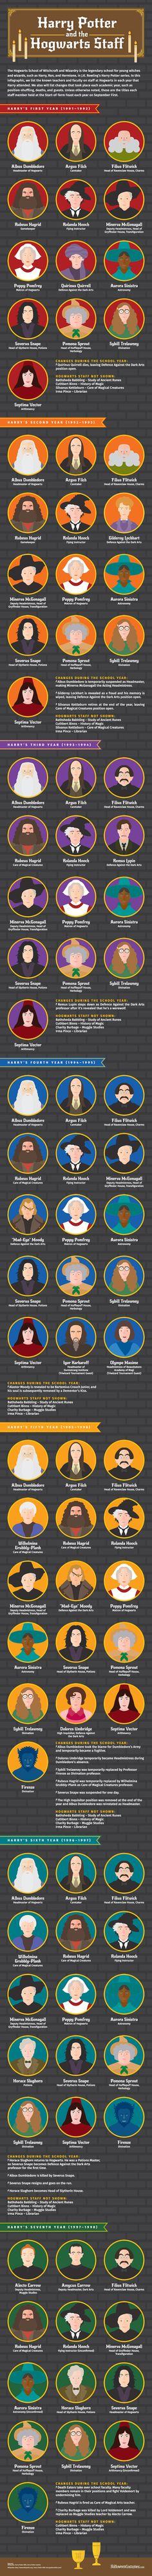 Harry Potter & the Hogwarts Staff Infographic - From Dumbledore to Firenze Harry Potter Plakat, Mundo Harry Potter, Harry Potter Facts, Harry Potter Quotes, Harry Potter Books, Harry Potter Love, Harry Potter Characters, Harry Potter Universal, Harry Potter Fandom